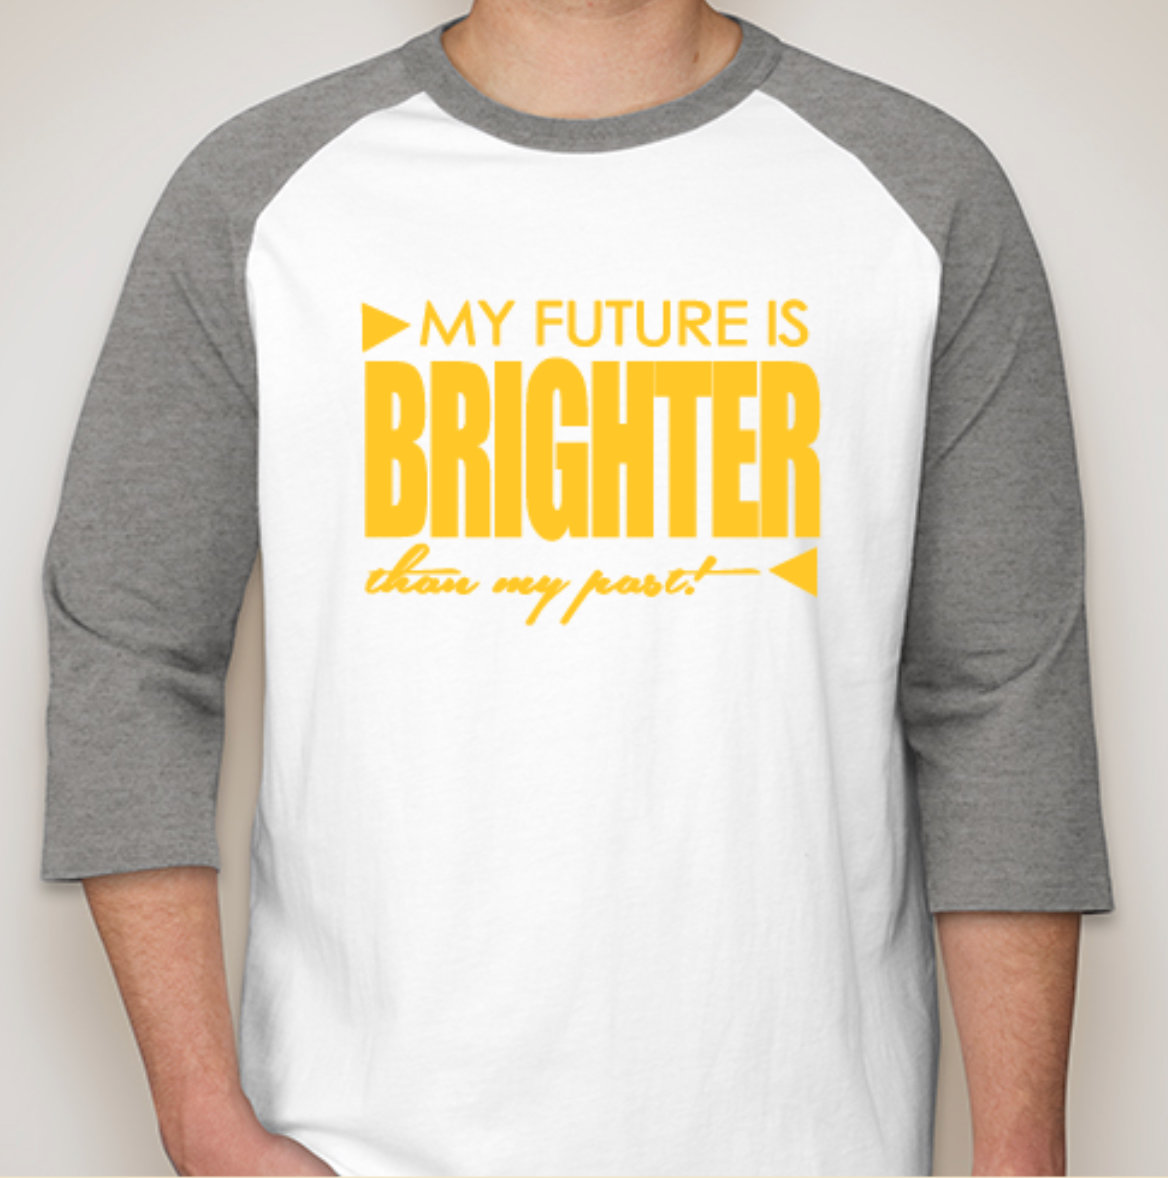 Baseball Tee with Gold Letter Text